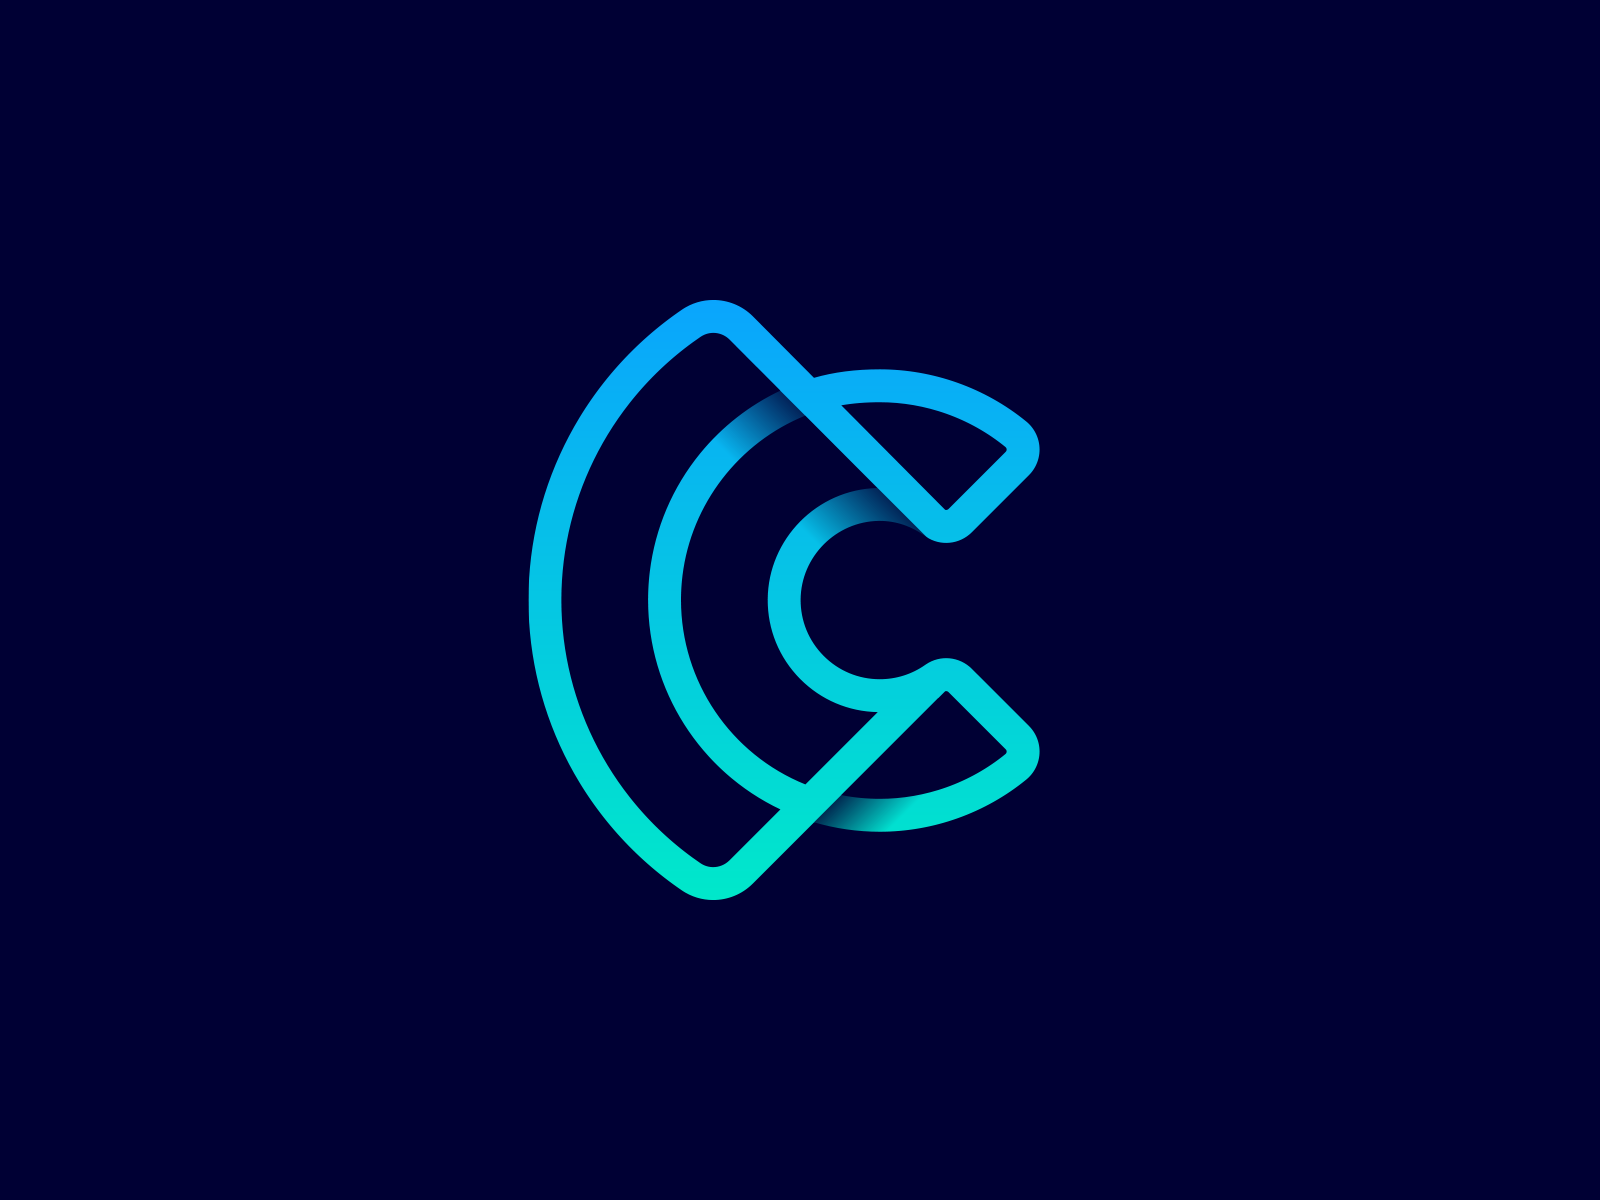 C unused logo 2 03